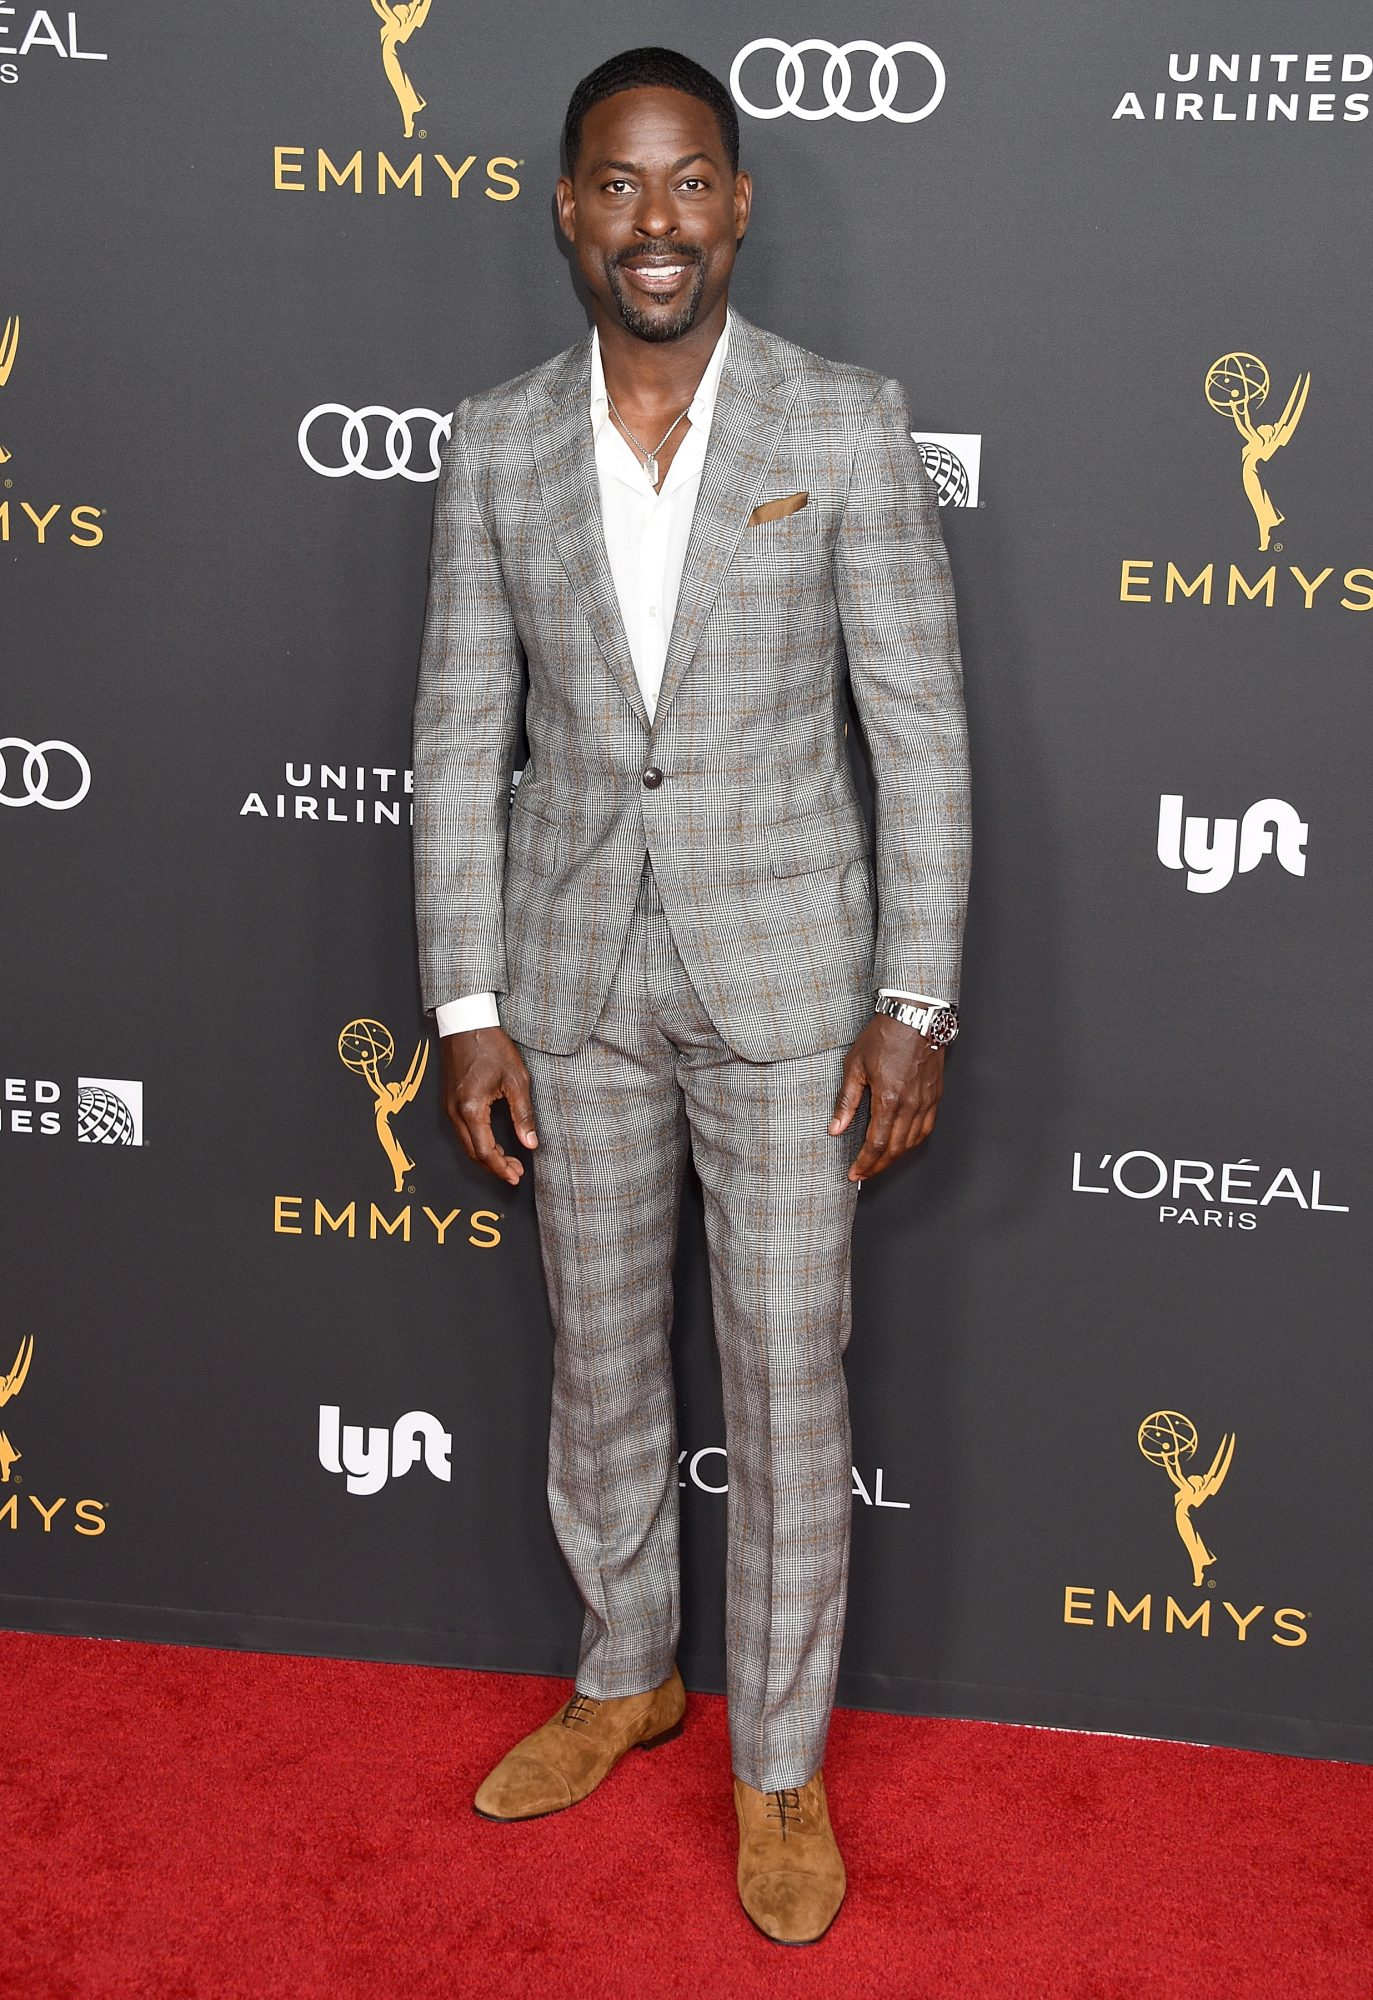 BEVERLY HILLS, CA - SEPTEMBER 20:  Sterling K. Brown arrives as the Television Academy Honors Emmy Nominated Performers at Wallis Annenberg Center for the Performing Arts on September 20, 2019 in Beverly Hills, California.  (Photo by Gregg DeGuire/Getty Images)